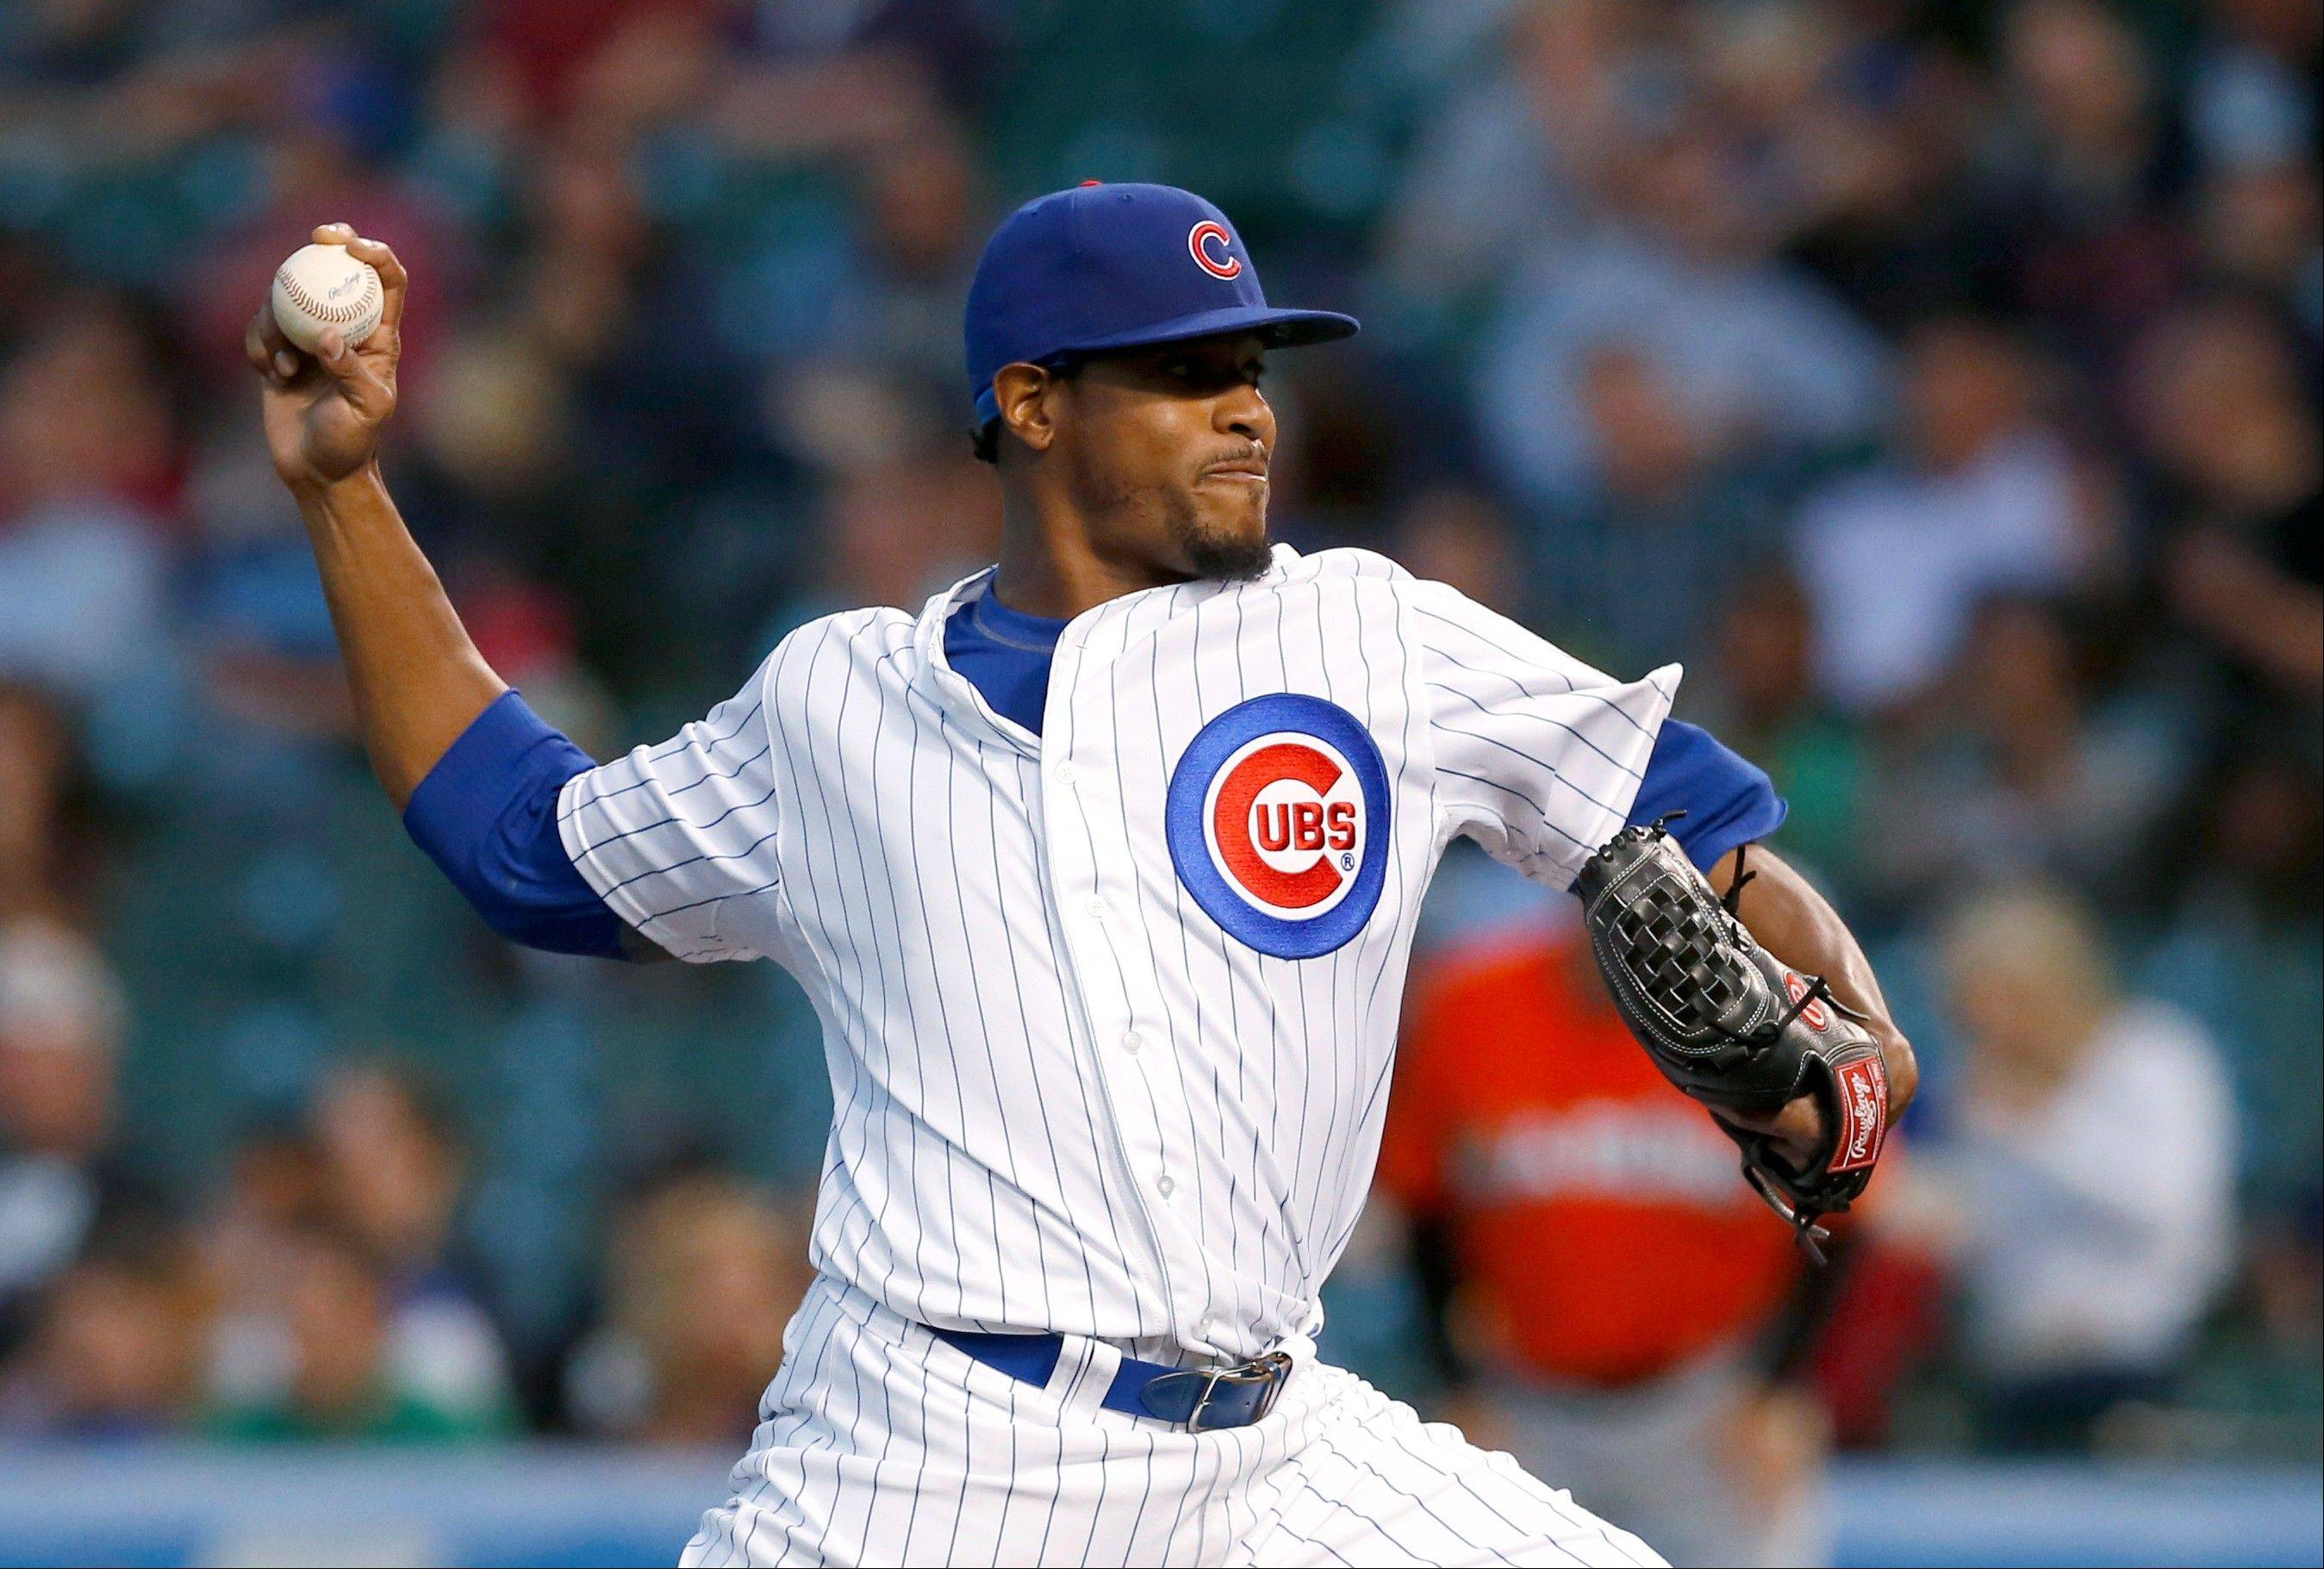 Cubs' Jackson continues to struggle